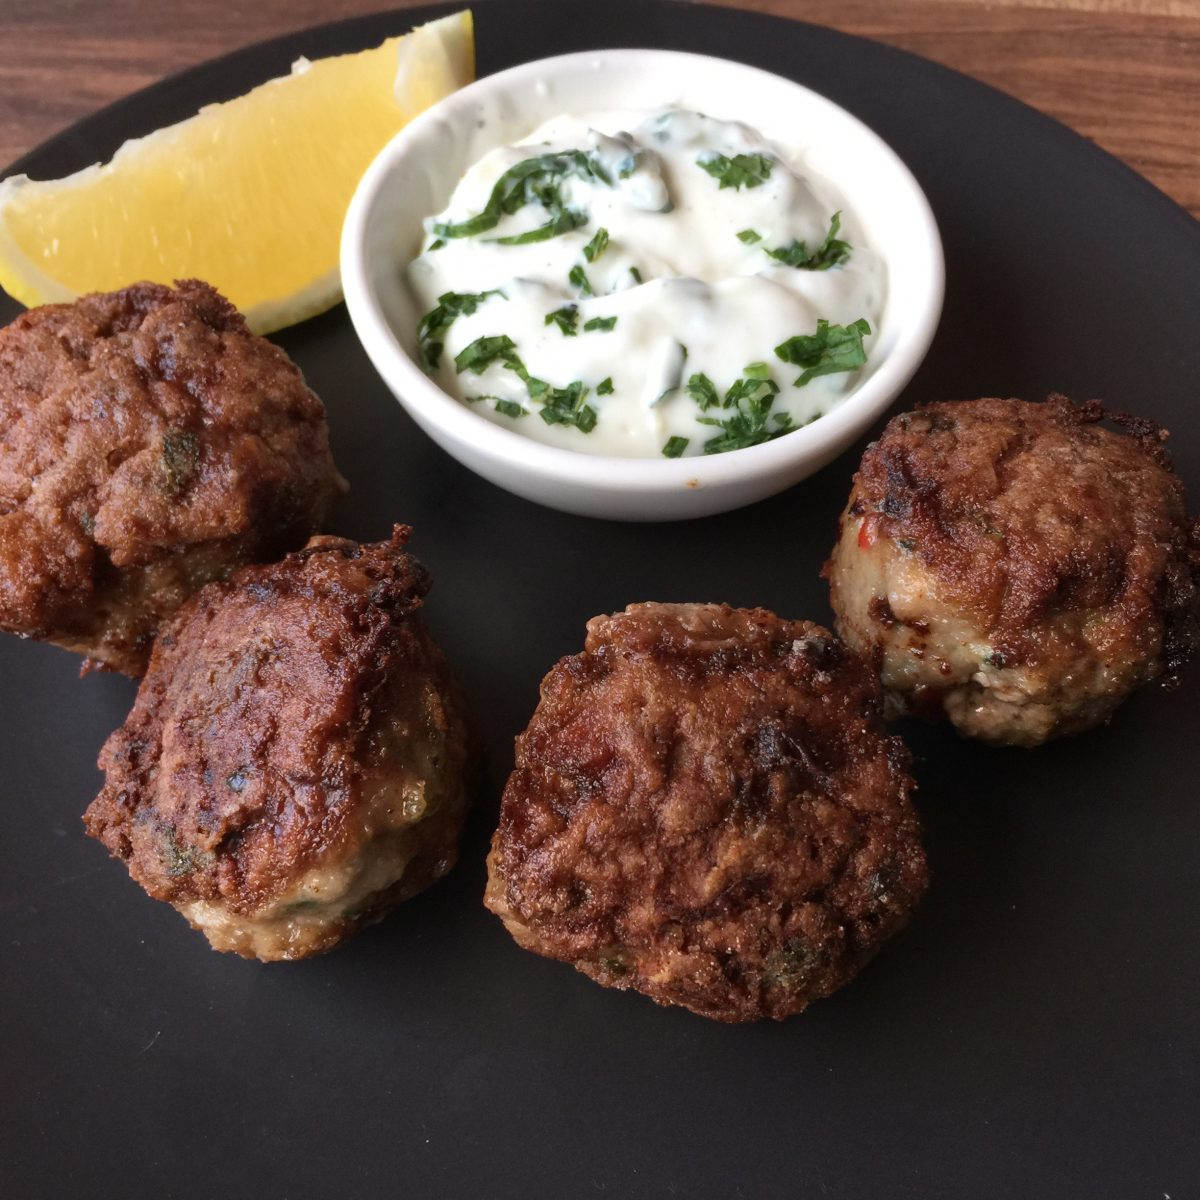 Lamb kofta balls by cooking meals for one